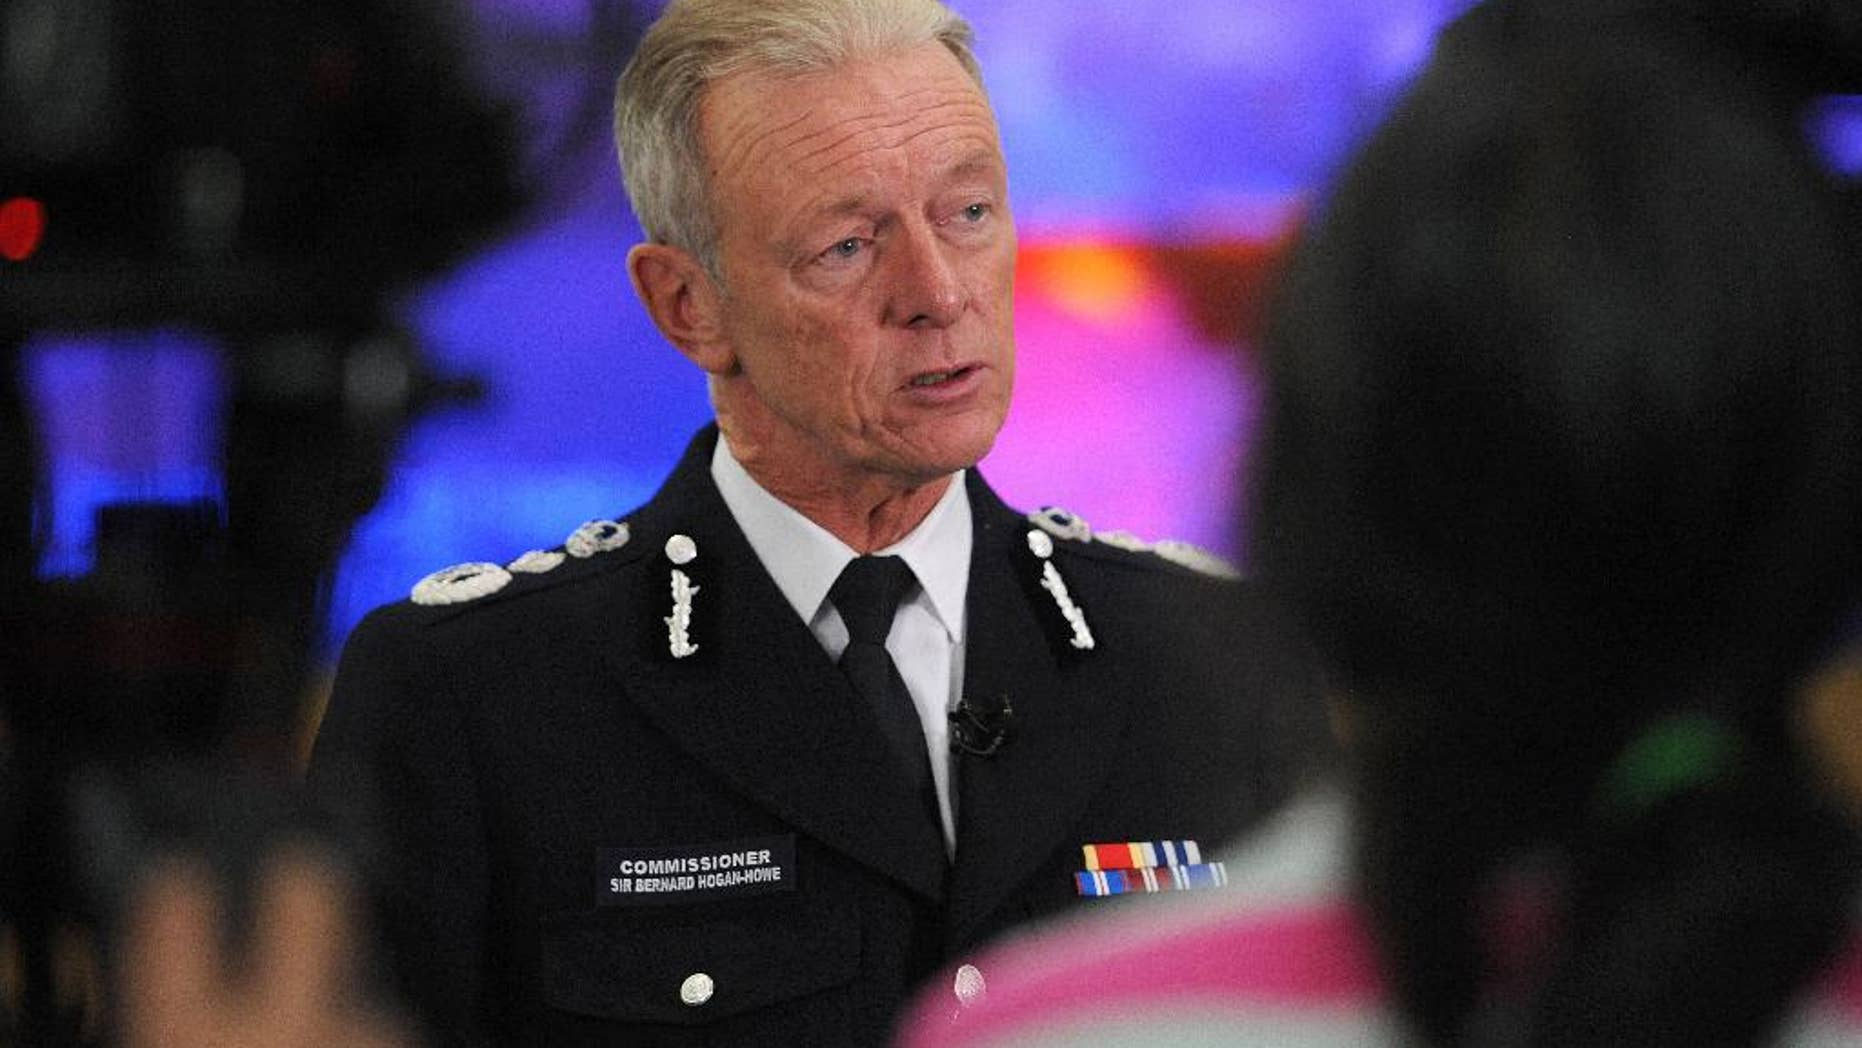 Britain's Metropolitan Police Commissioner Bernard Hogan-Howe speaks to media at the Metropolitan Police Control Centre in central London, Thursday, Sept. 29, 2016. Hogan-Howe, Britain's most senior police officer, has announced he'll retire in February, seven months before his contract expires. (Nick Ansell/PA via AP)